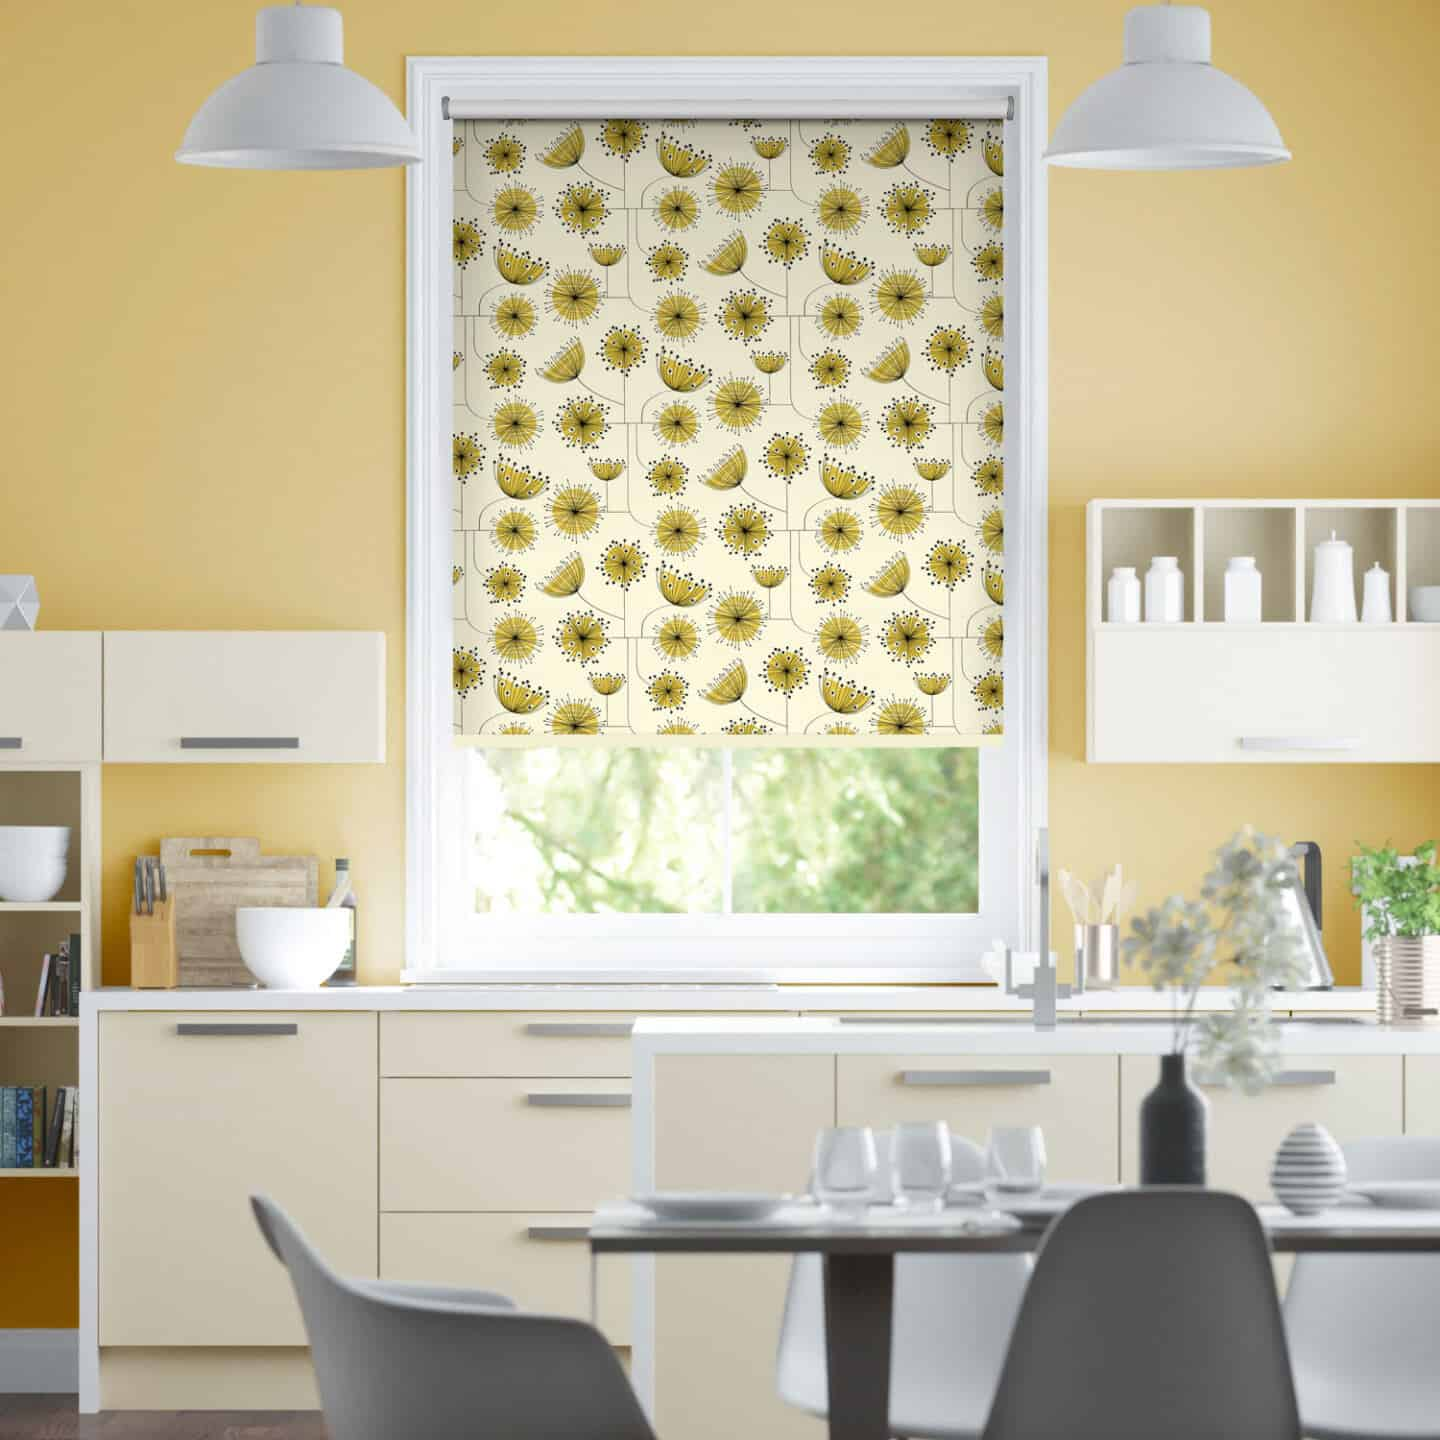 Pantone Colour of the Year 2021 - Illuminating. The colour psychology behind using yellow in interiors. A kitchen featuring yellow blinds from Blinds2Go